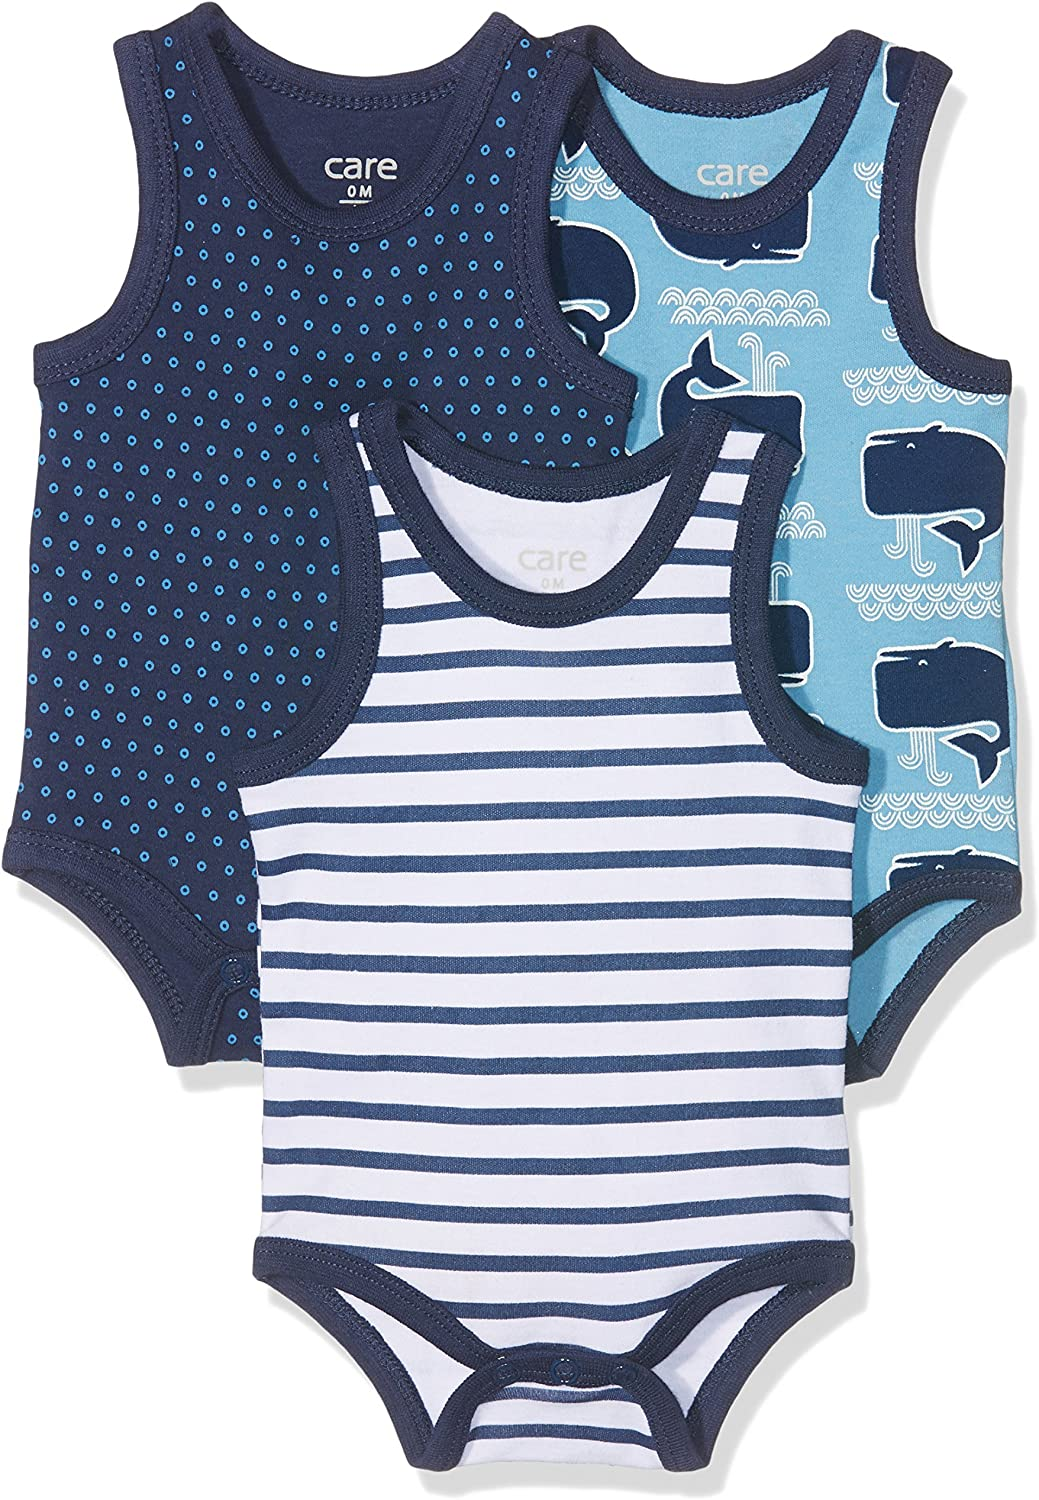 Exclusive 3-Pack Sleeveless Care Baby Boys Bodysuit